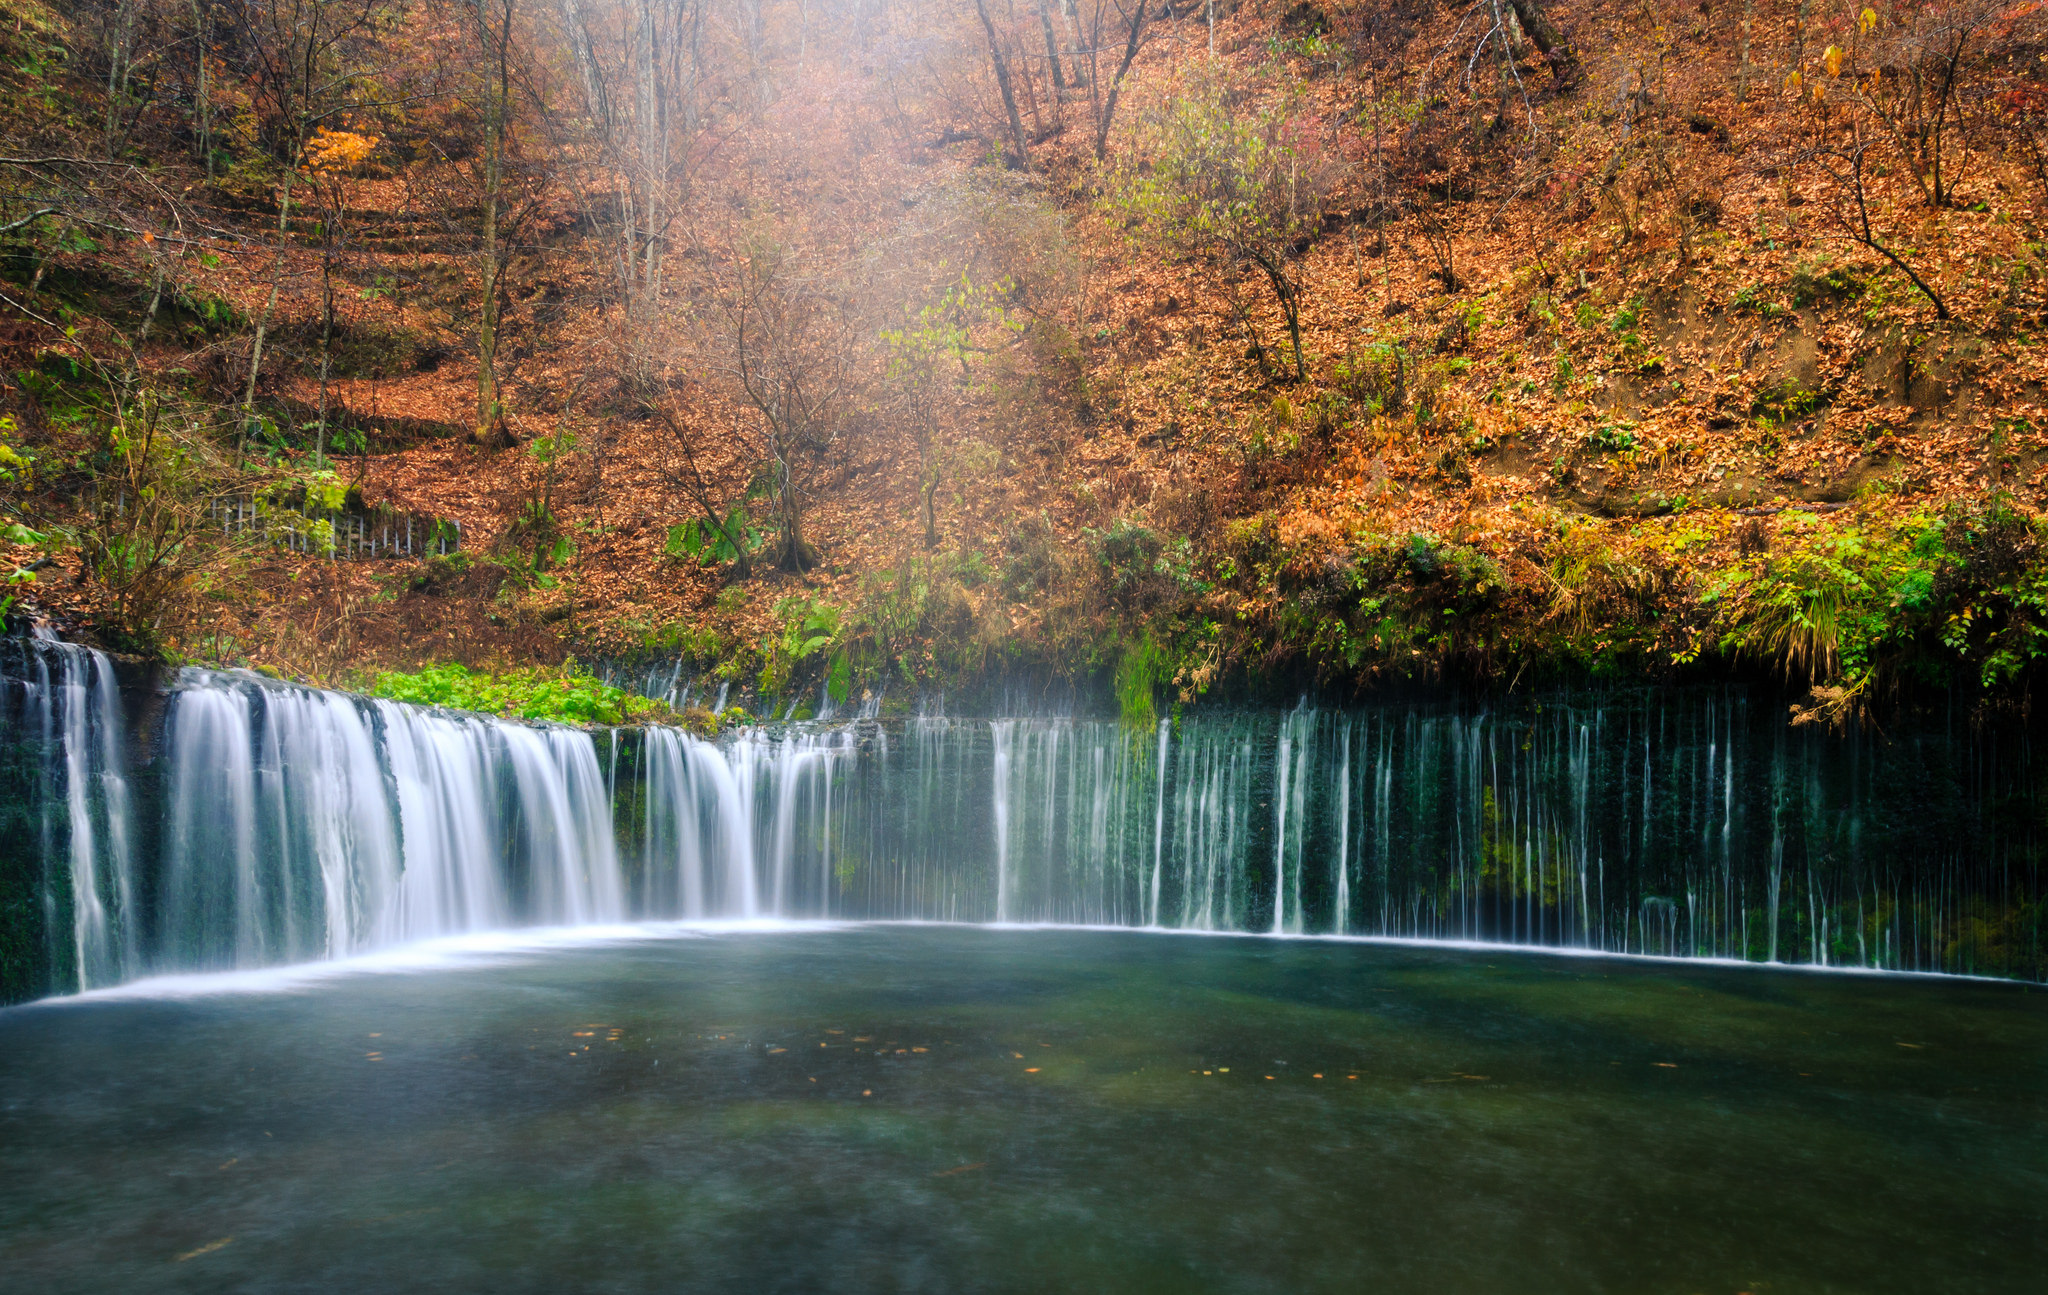 Green Forest Waterfall | Pictures for my Desktop | Pinterest ...